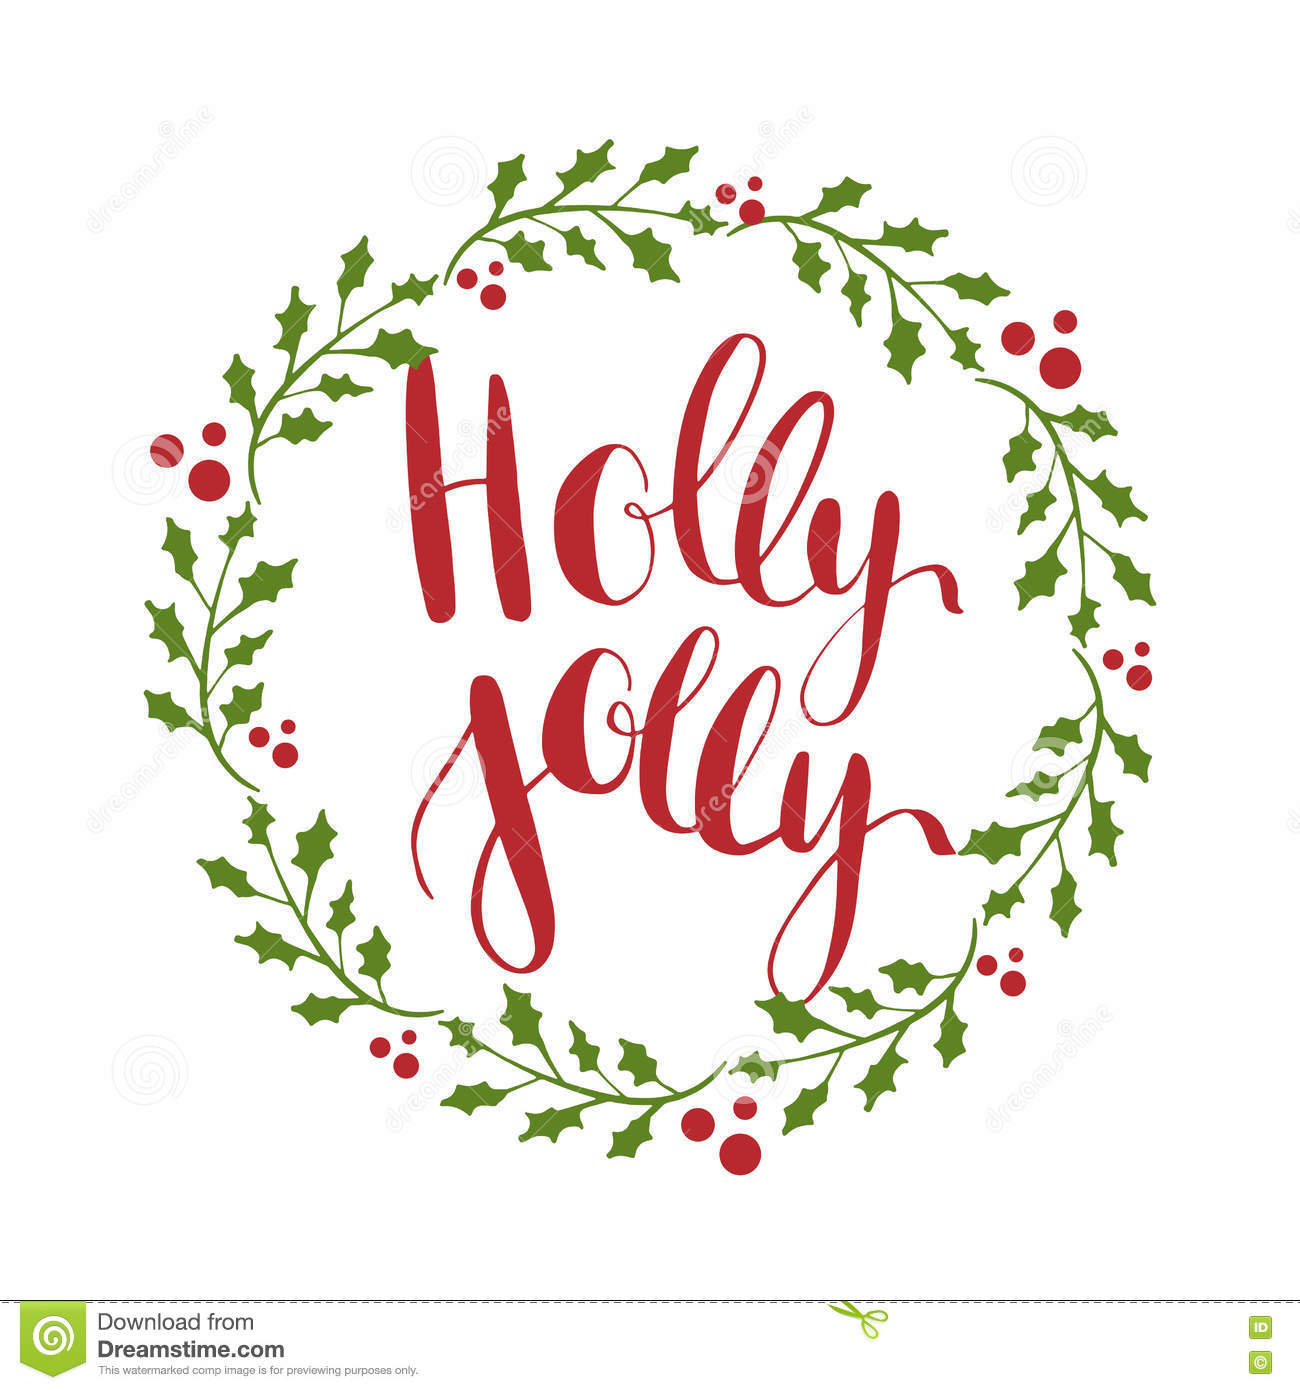 Holly jolly greeting card with hand written calligraphic christmas holly jolly greeting card with hand written calligraphic christmas wishes phrase kristyandbryce Choice Image